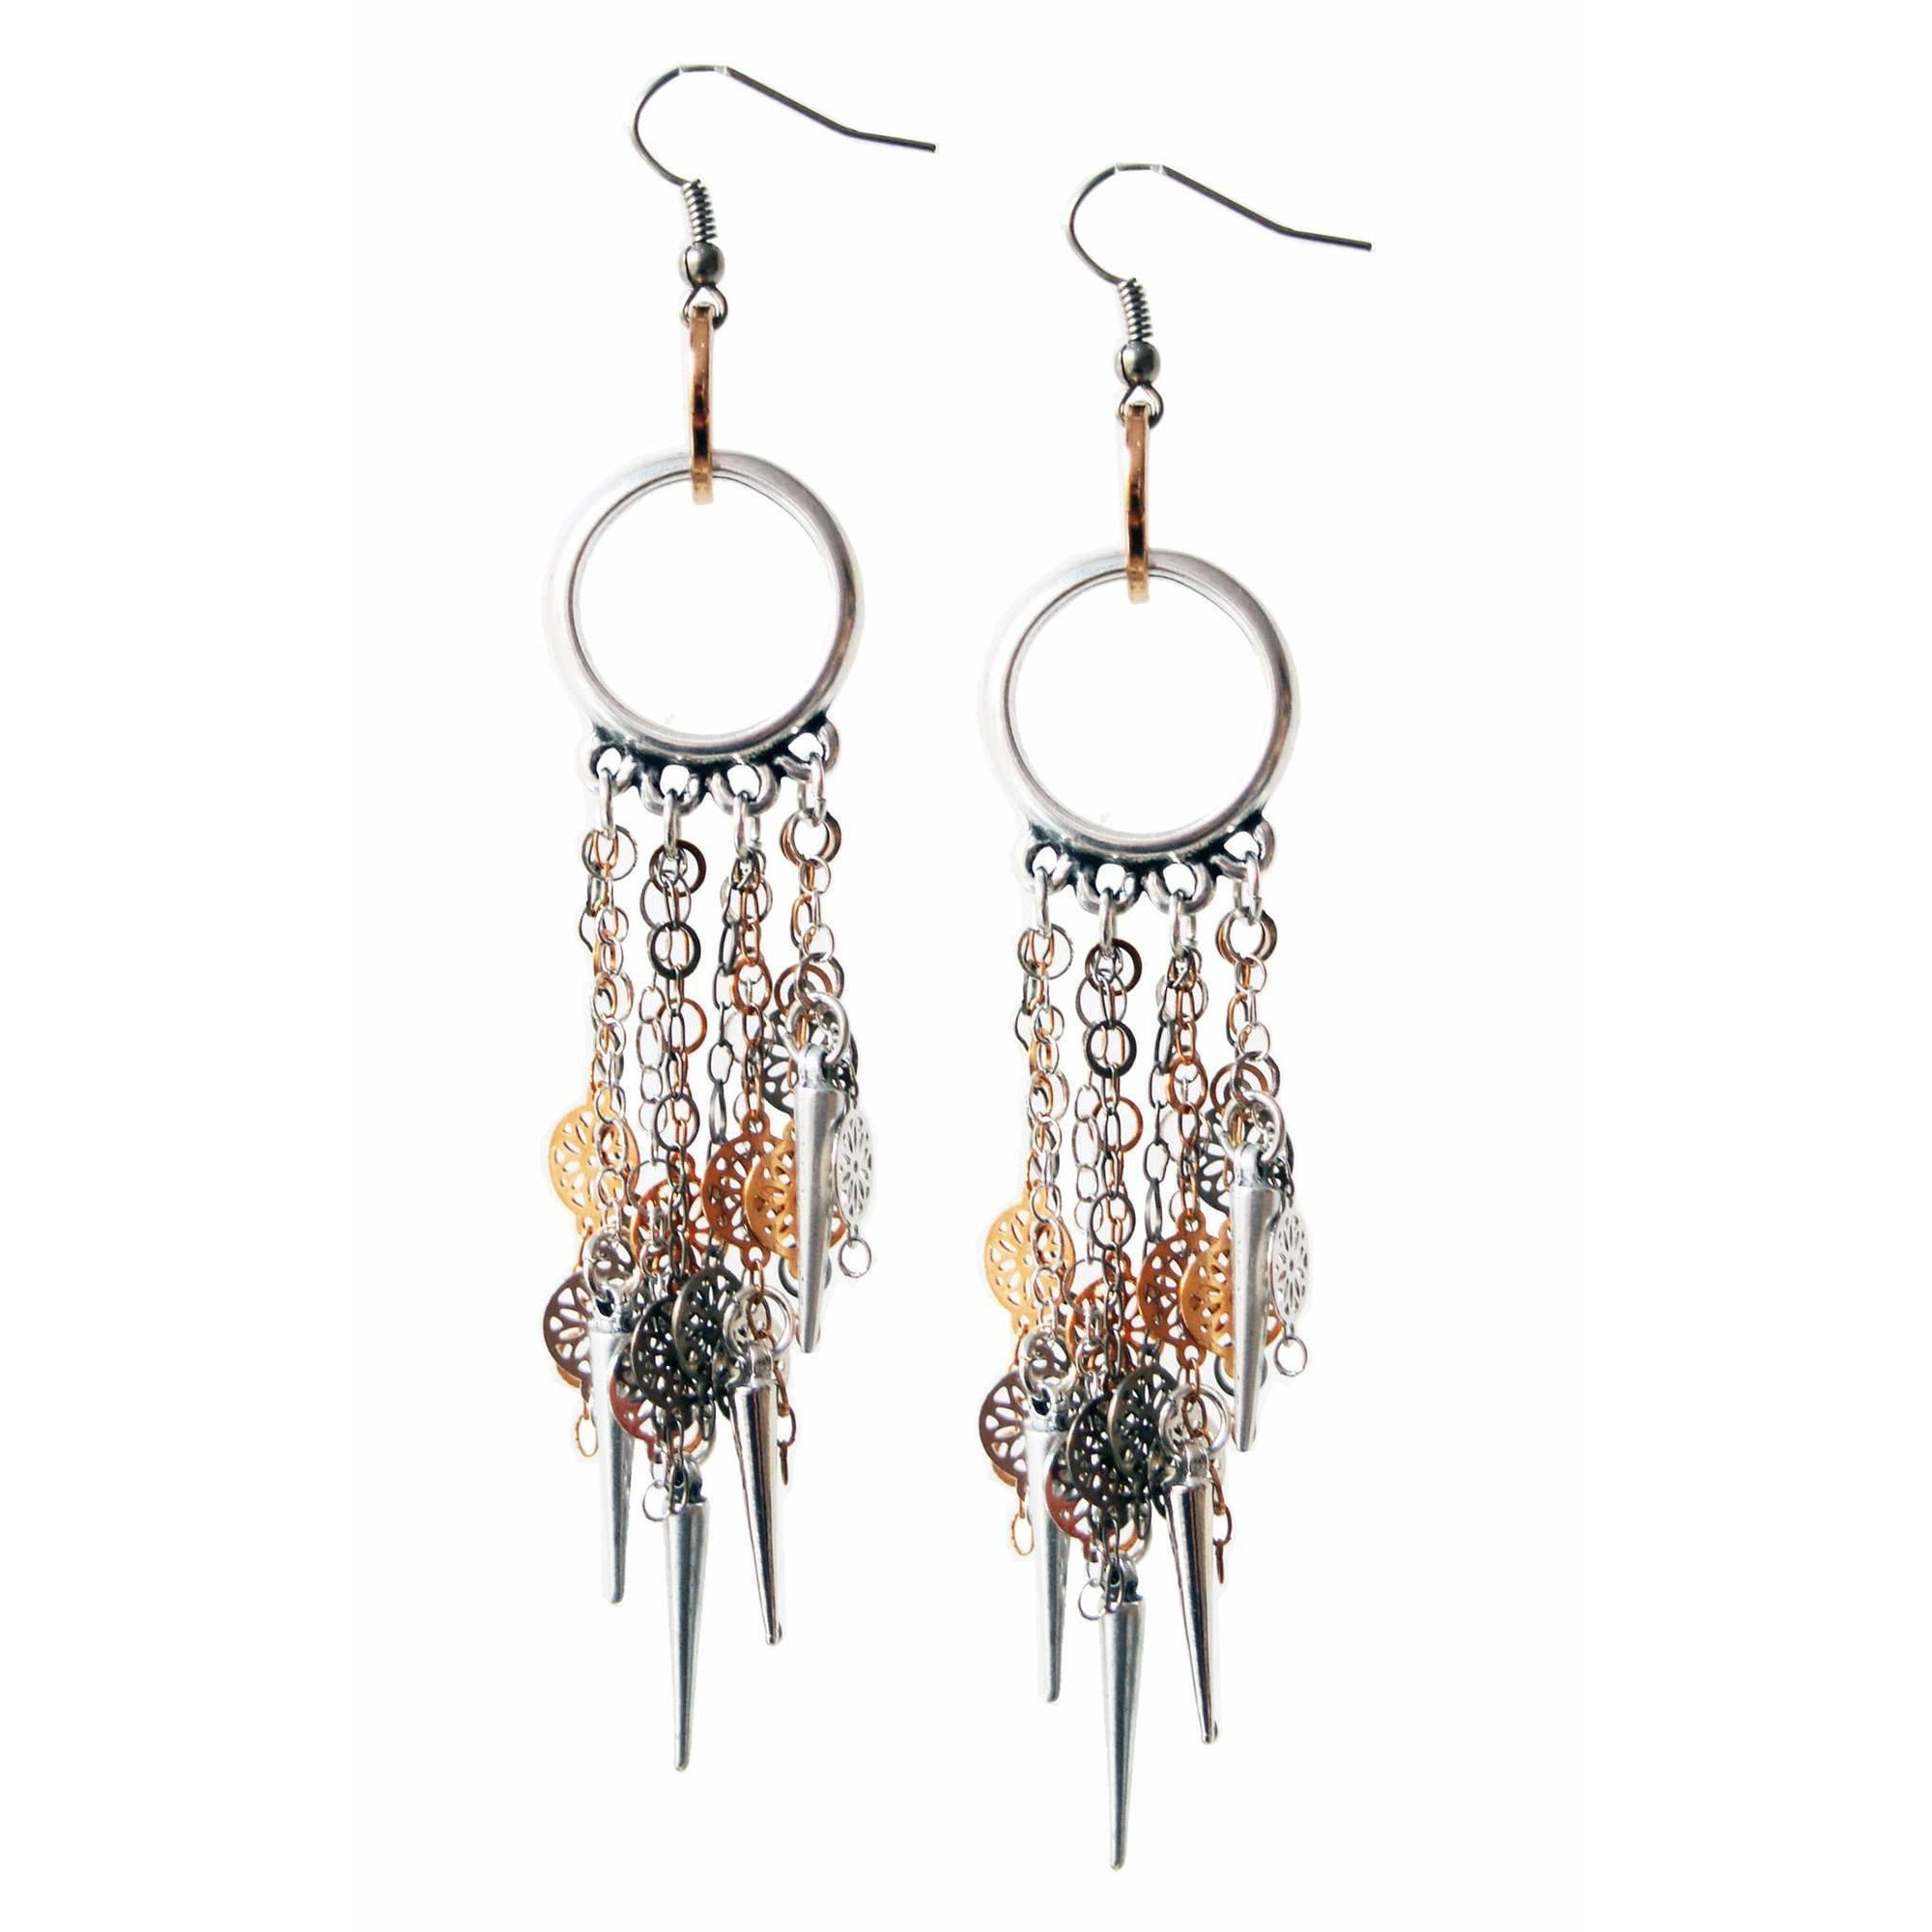 Silver Chandelier Earrings in Flower Chains With Studs - Miraposa